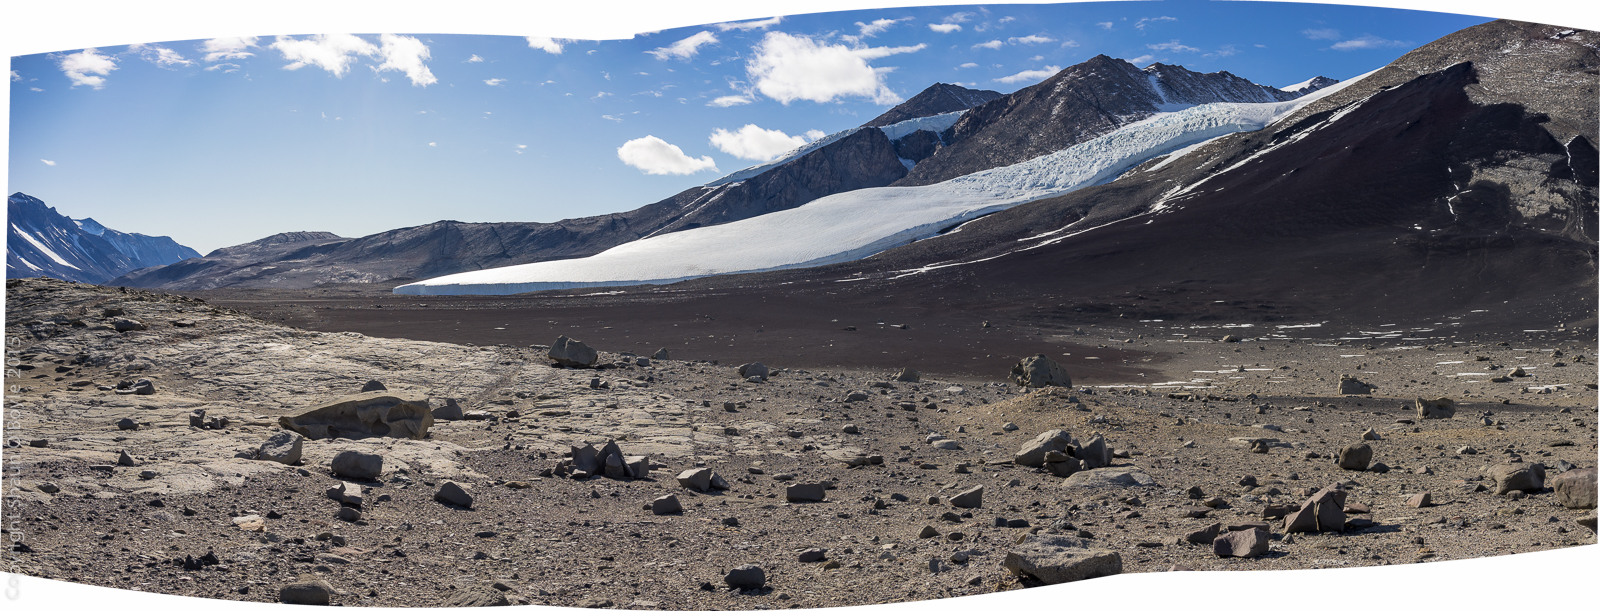 Huge field of black volcanic rock, a cone that has eroded and fractured over the last million years into a delta of marble sized rocks.